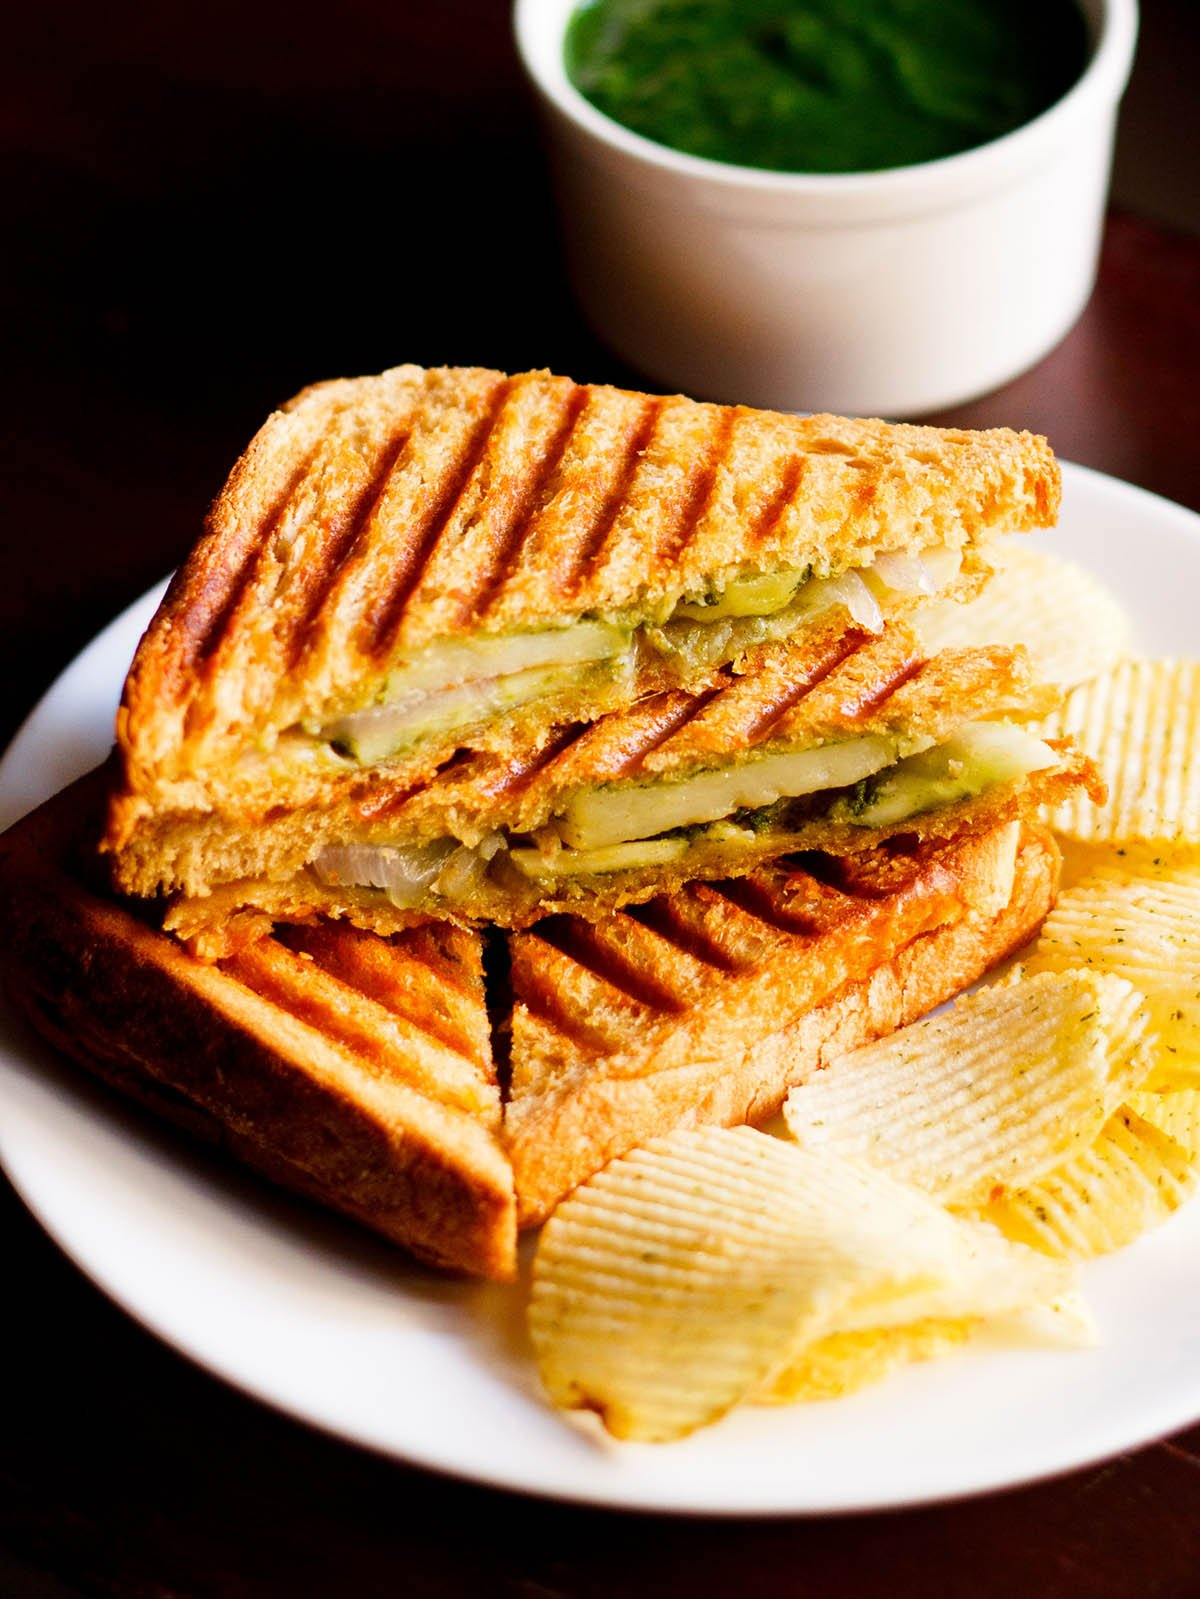 grilled sandwich with the filling side shown some potato wafers on a white plate